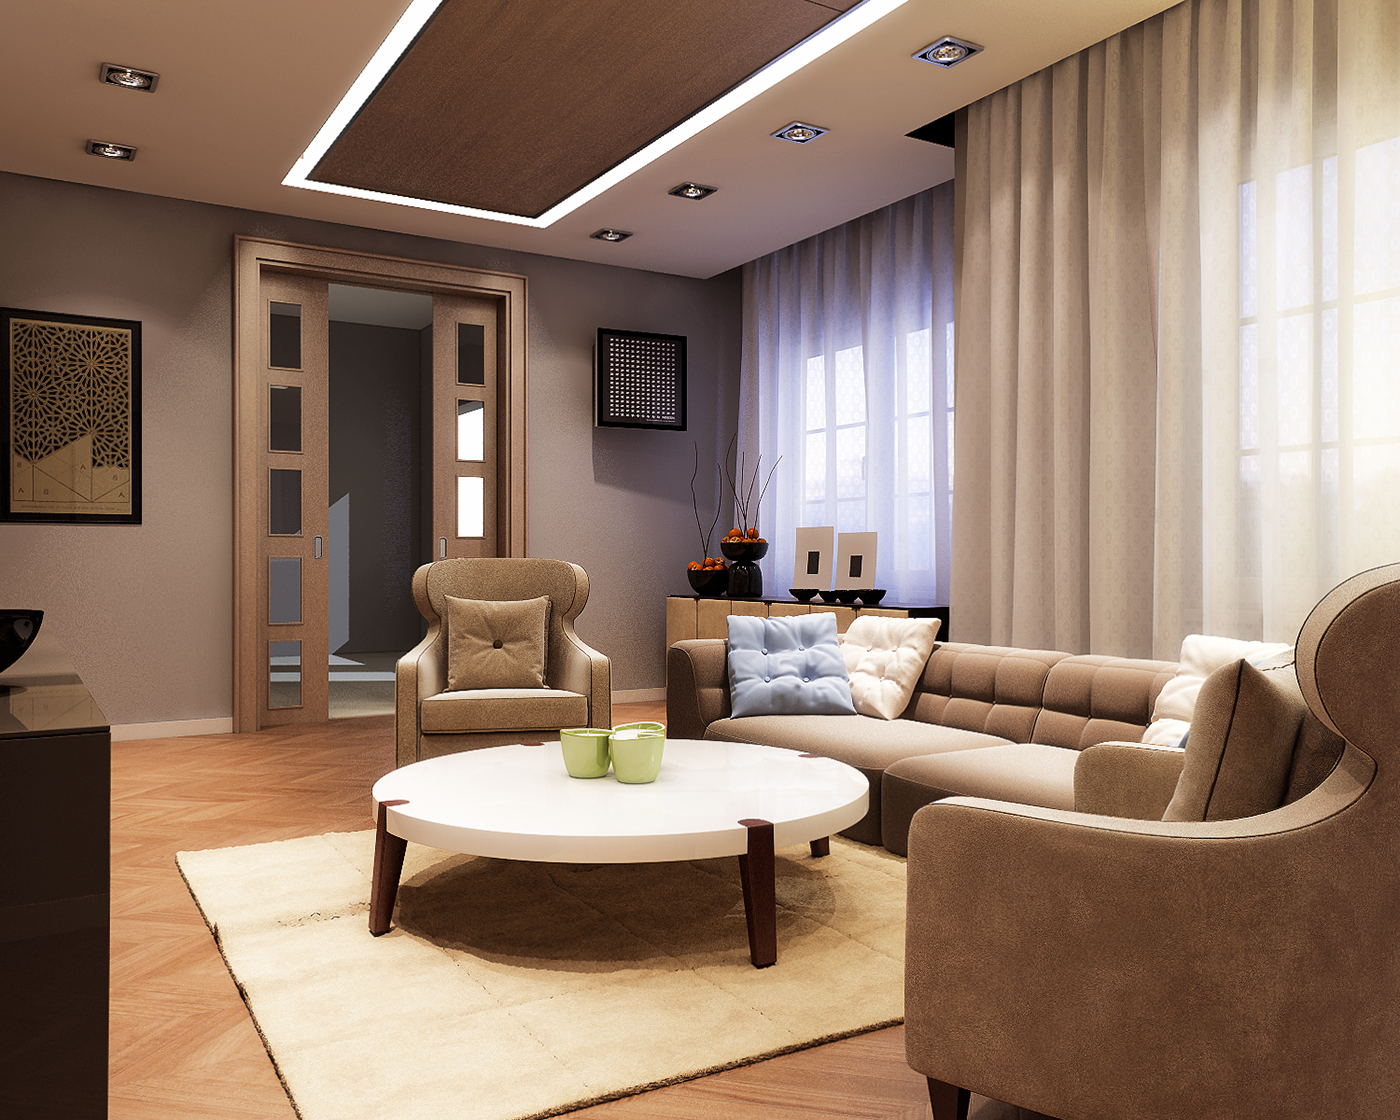 Familly residence abuja nigeria on behance for Interior decoration nigeria